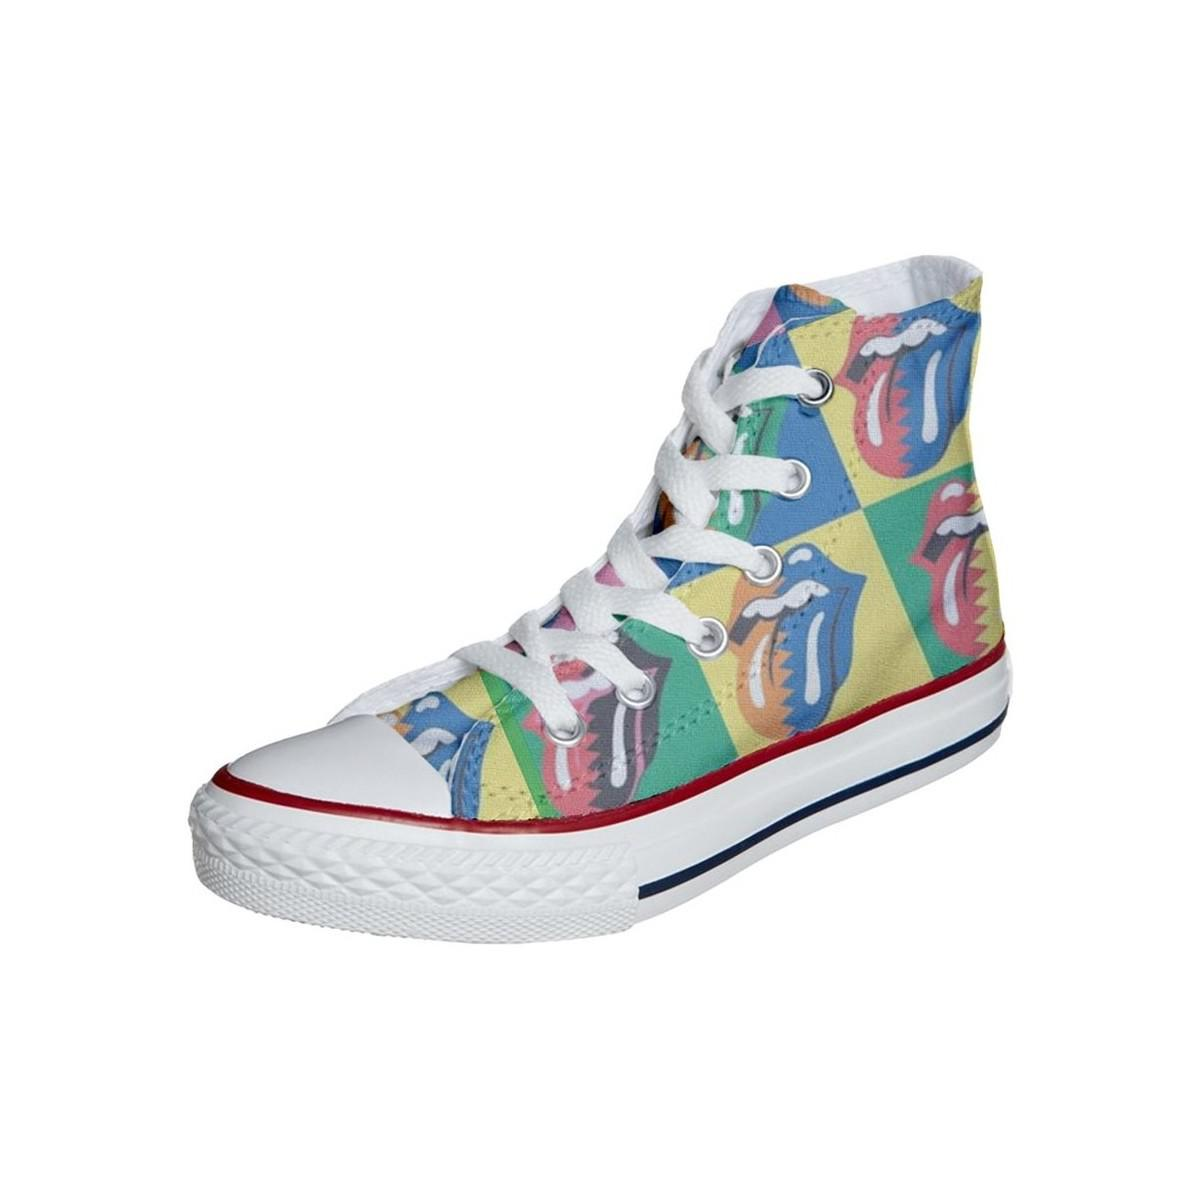 Converse Original Customized With Printed Italian Style Handmade Shoes Ro Women's Shoes (trainers) In Blue